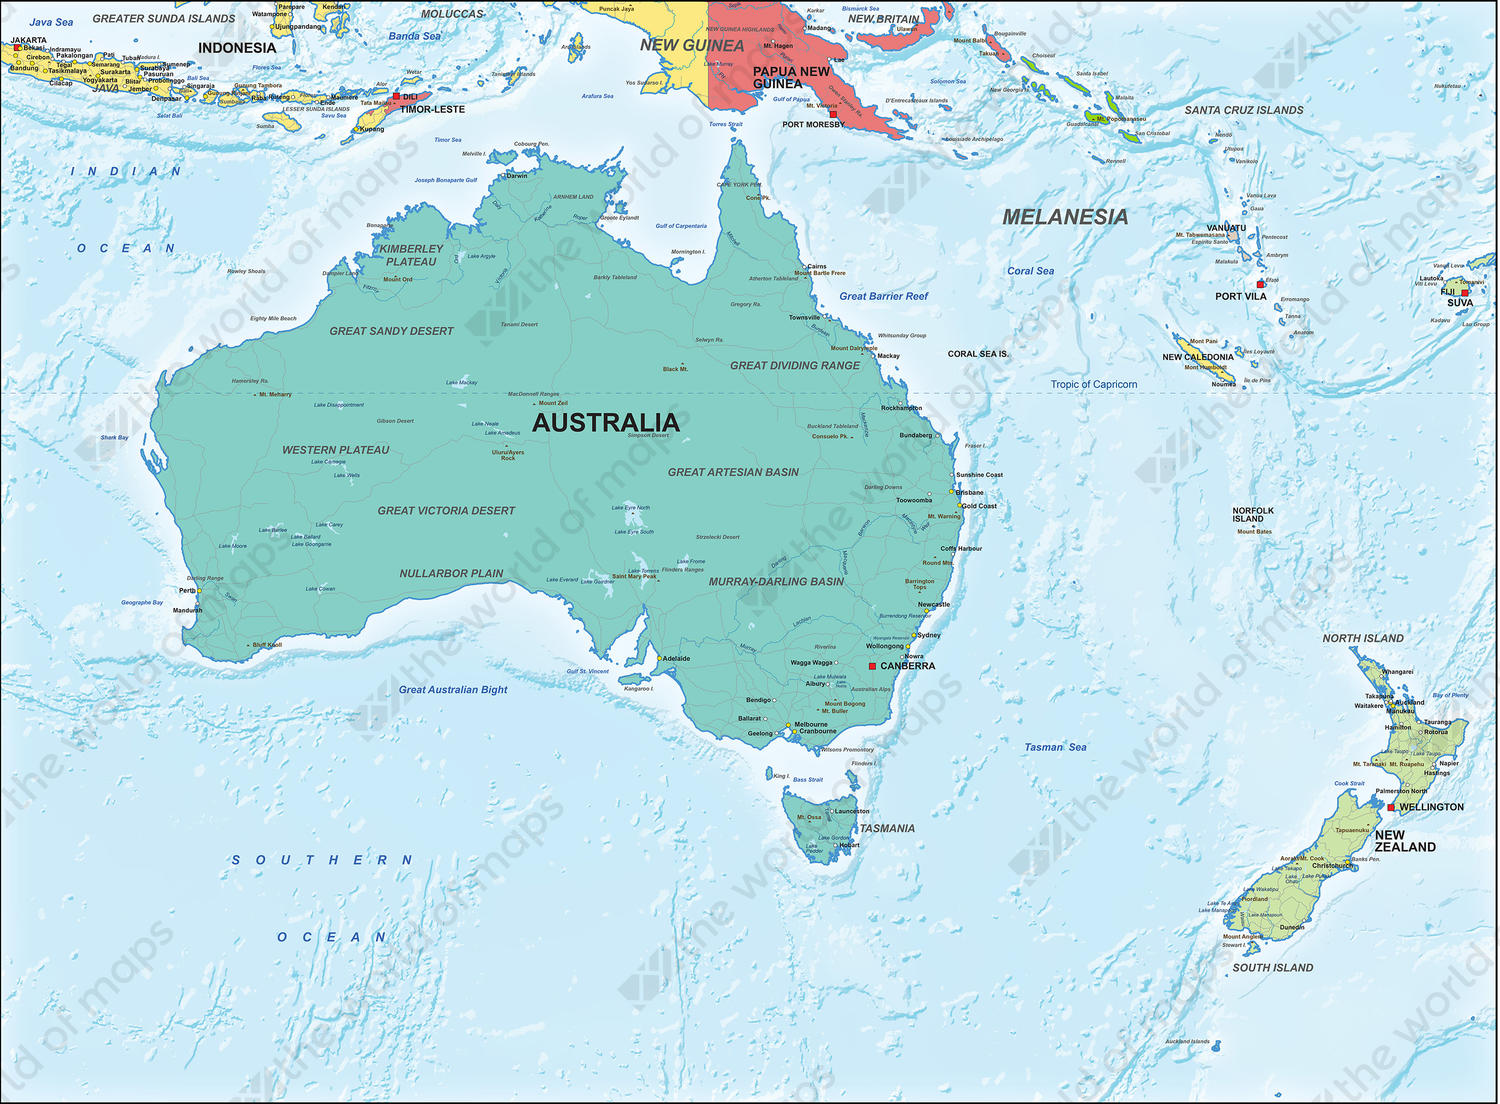 Australia Map Political.Digital Map Political Australia 1306 The World Of Maps Com